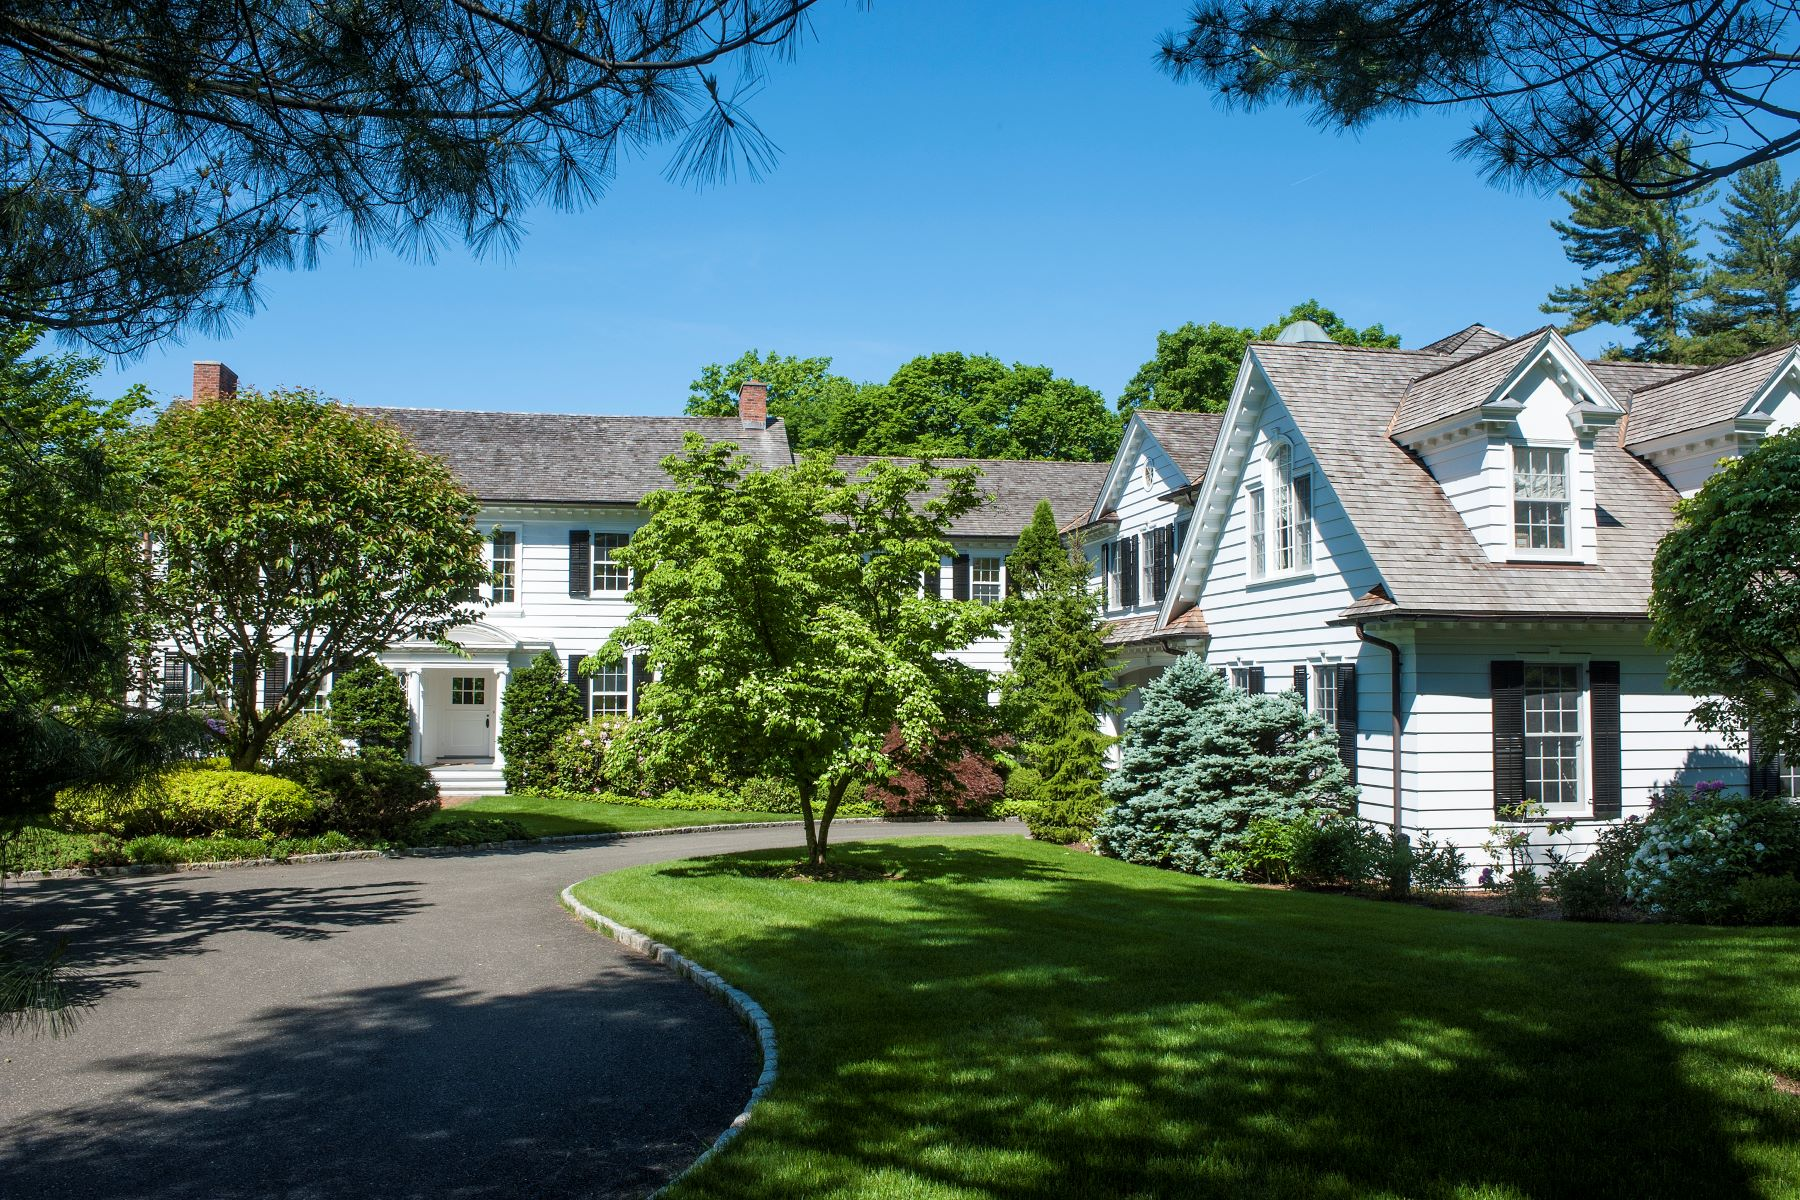 Single Family Home for Sale at Landmark New Canaan Estate 648 Smith Ridge Rd New Canaan, Connecticut, 06840 United States